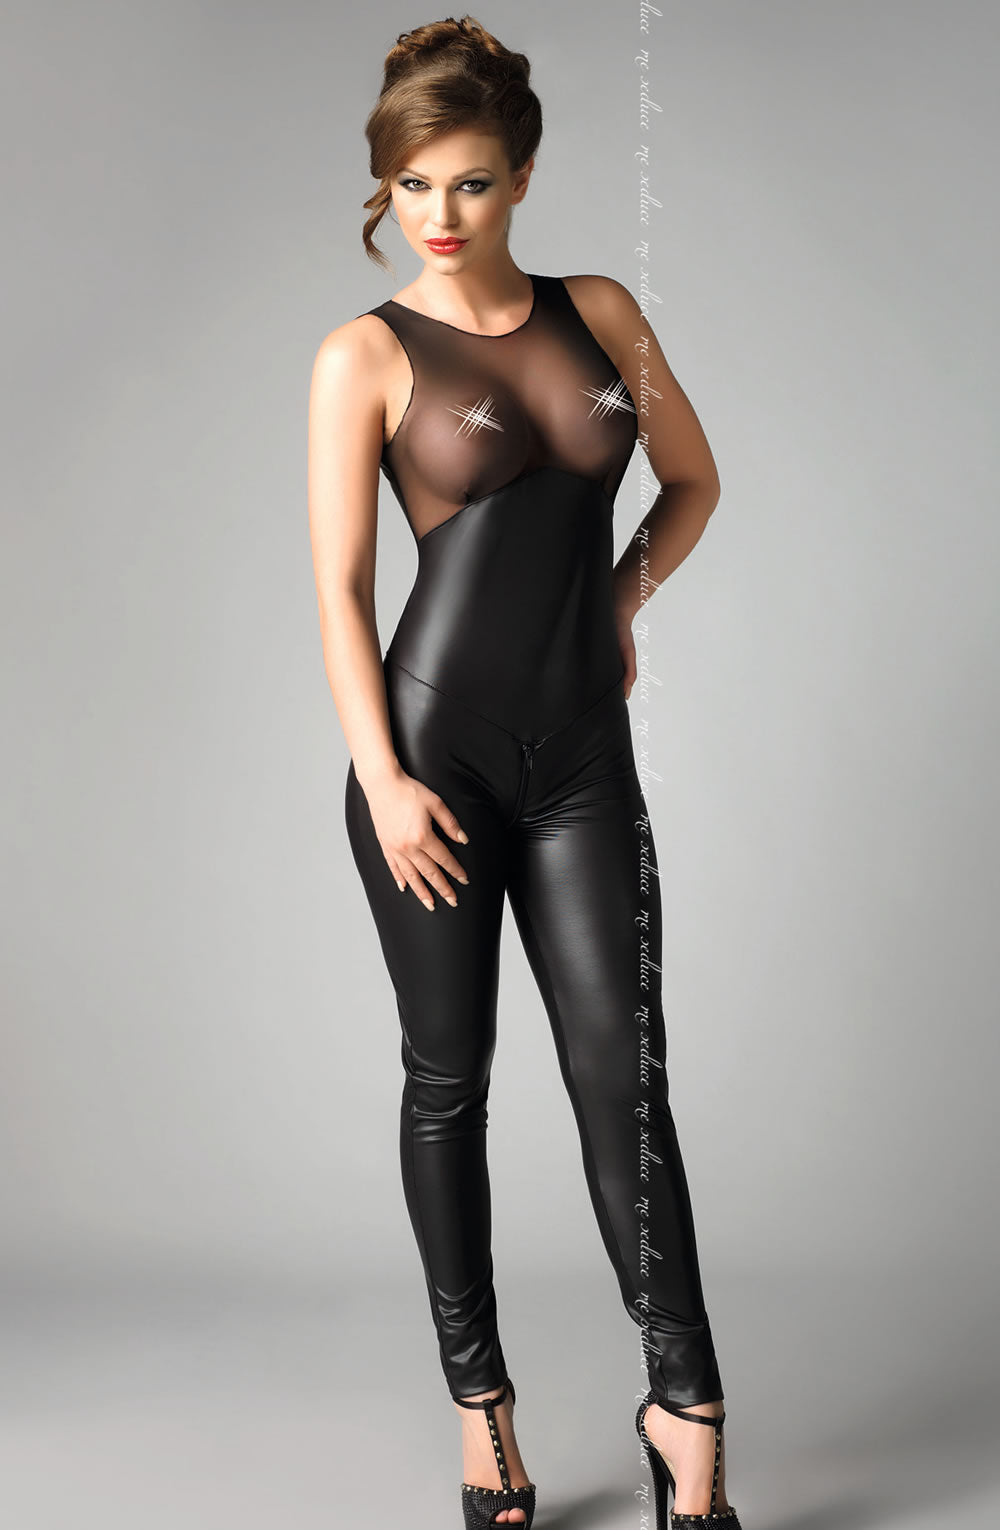 e Seduce e Seduce Dei Black3  Catsuits, Me Seduce, NEWLY-IMPORTED, Wet Look - So Luxe Lingerie